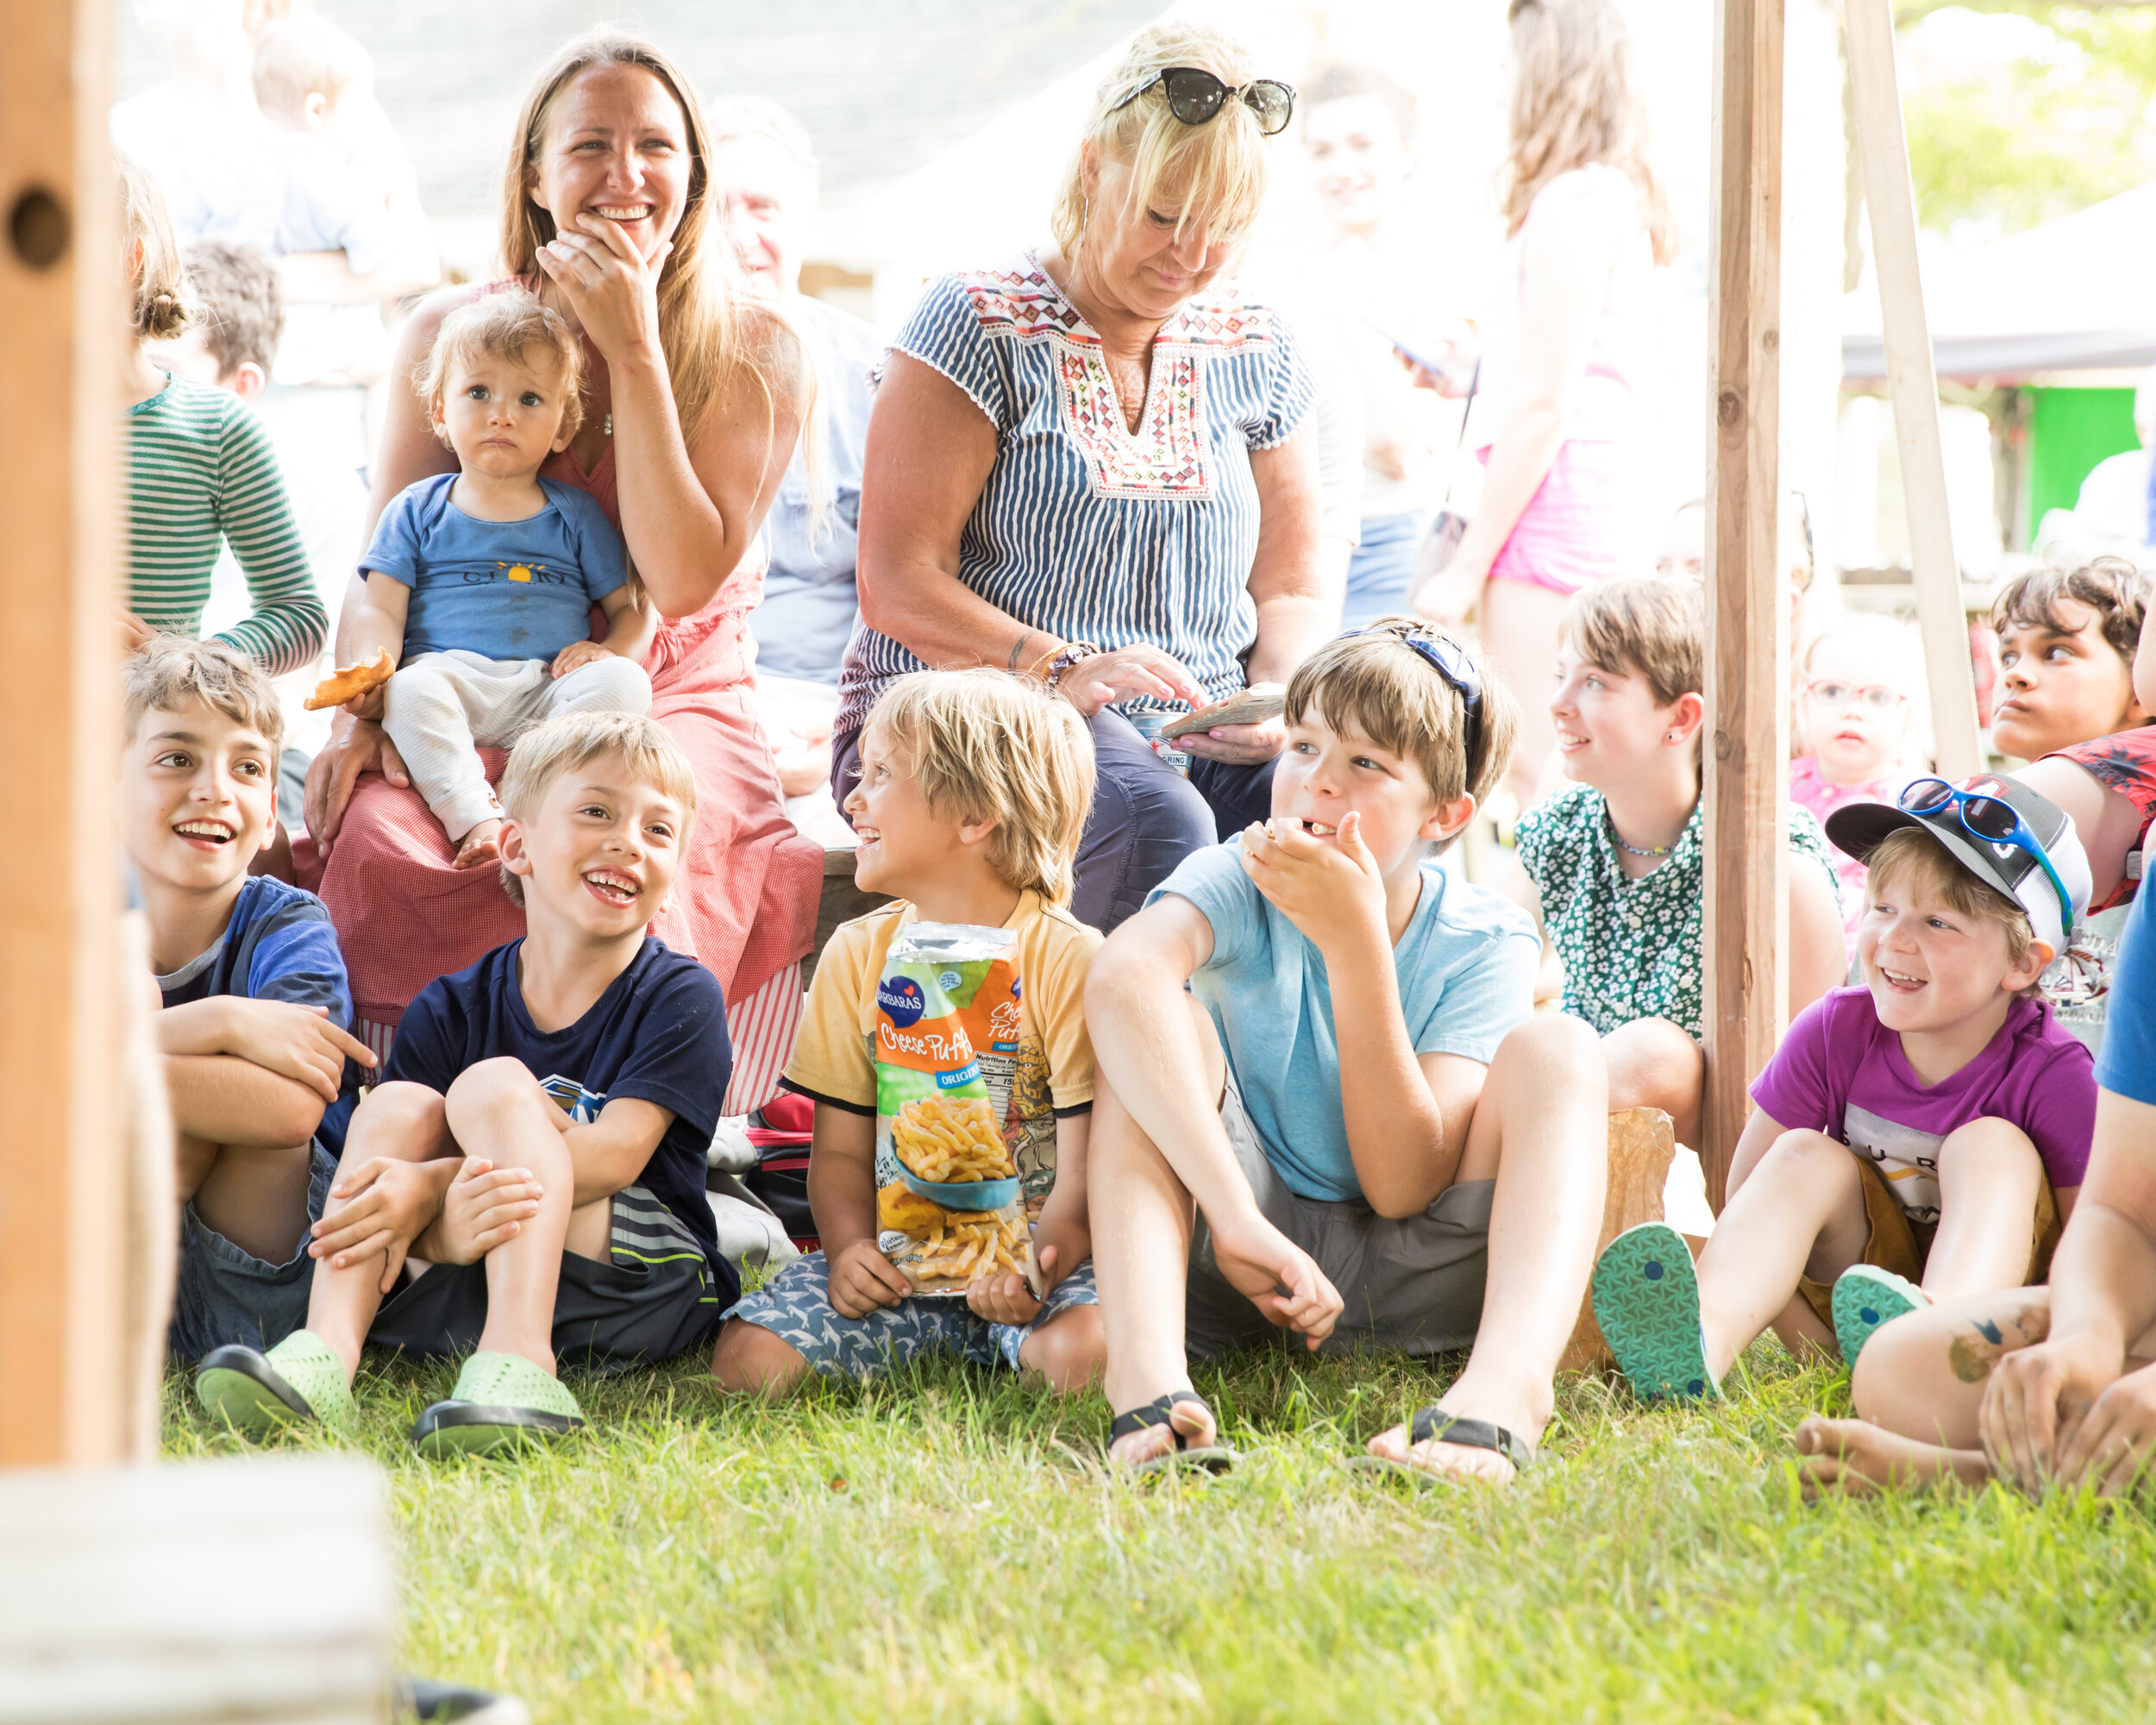 Families gather under the Big Top at a free Cinema Circus. Photo by Maria Thibodeau.